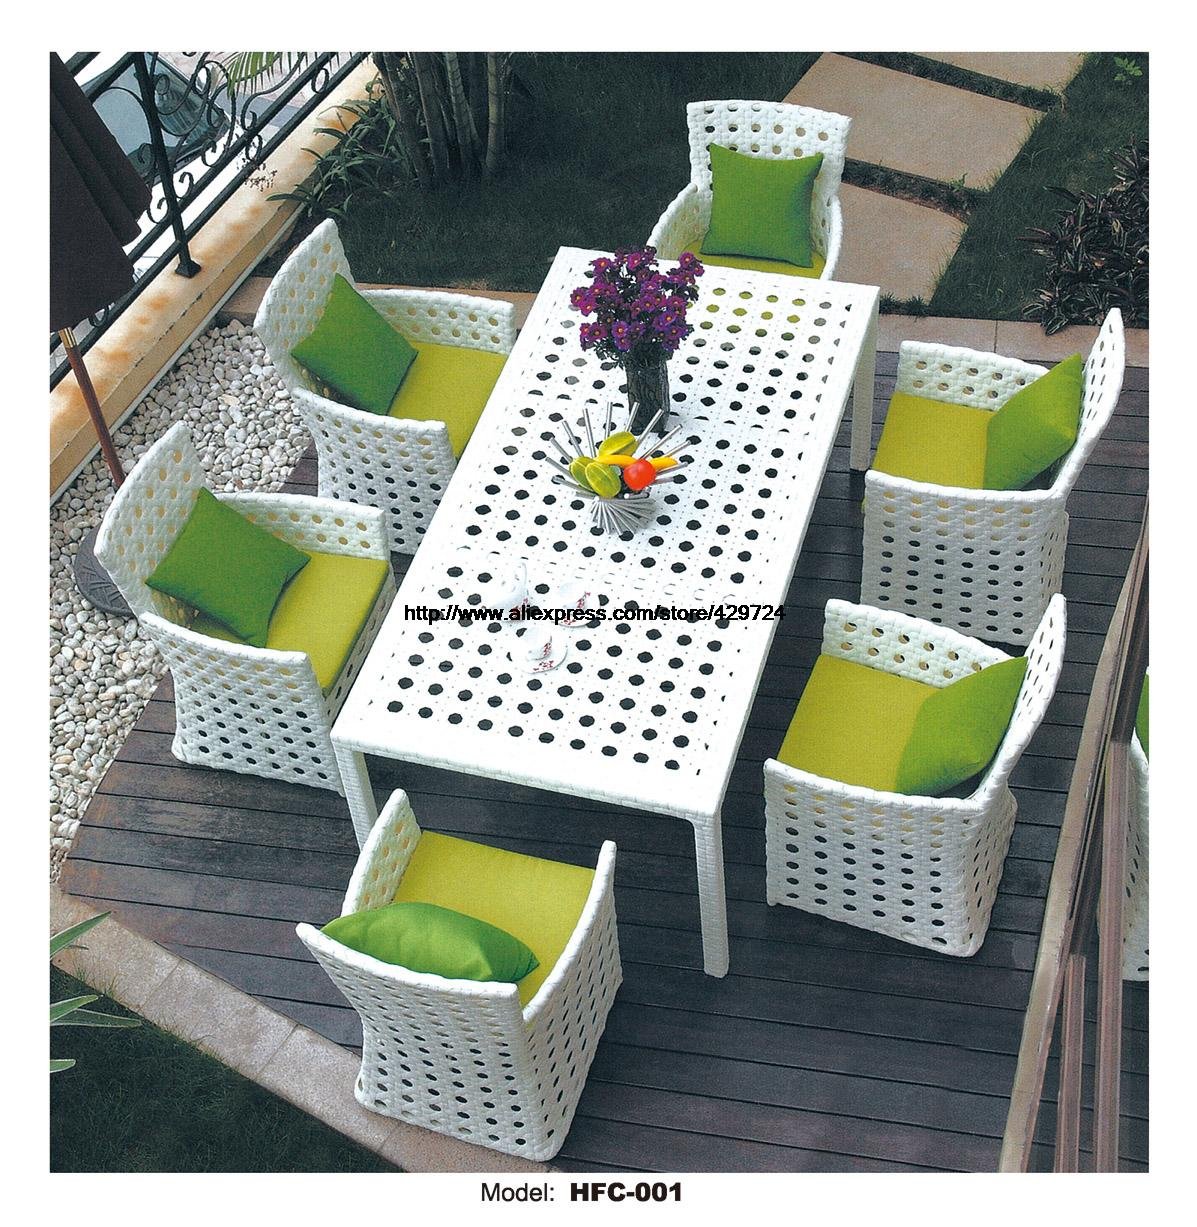 Modern White Rattan Table Chair Set 6 Piece Furniture Suite Outdoor Rattan Garden Beach Wicker Furniture Chair Table Set HFC001 circular arc sofa half round furniture healthy pe rattan garden furniture sofa set luxury garden outdoor furniture sofas hfa086